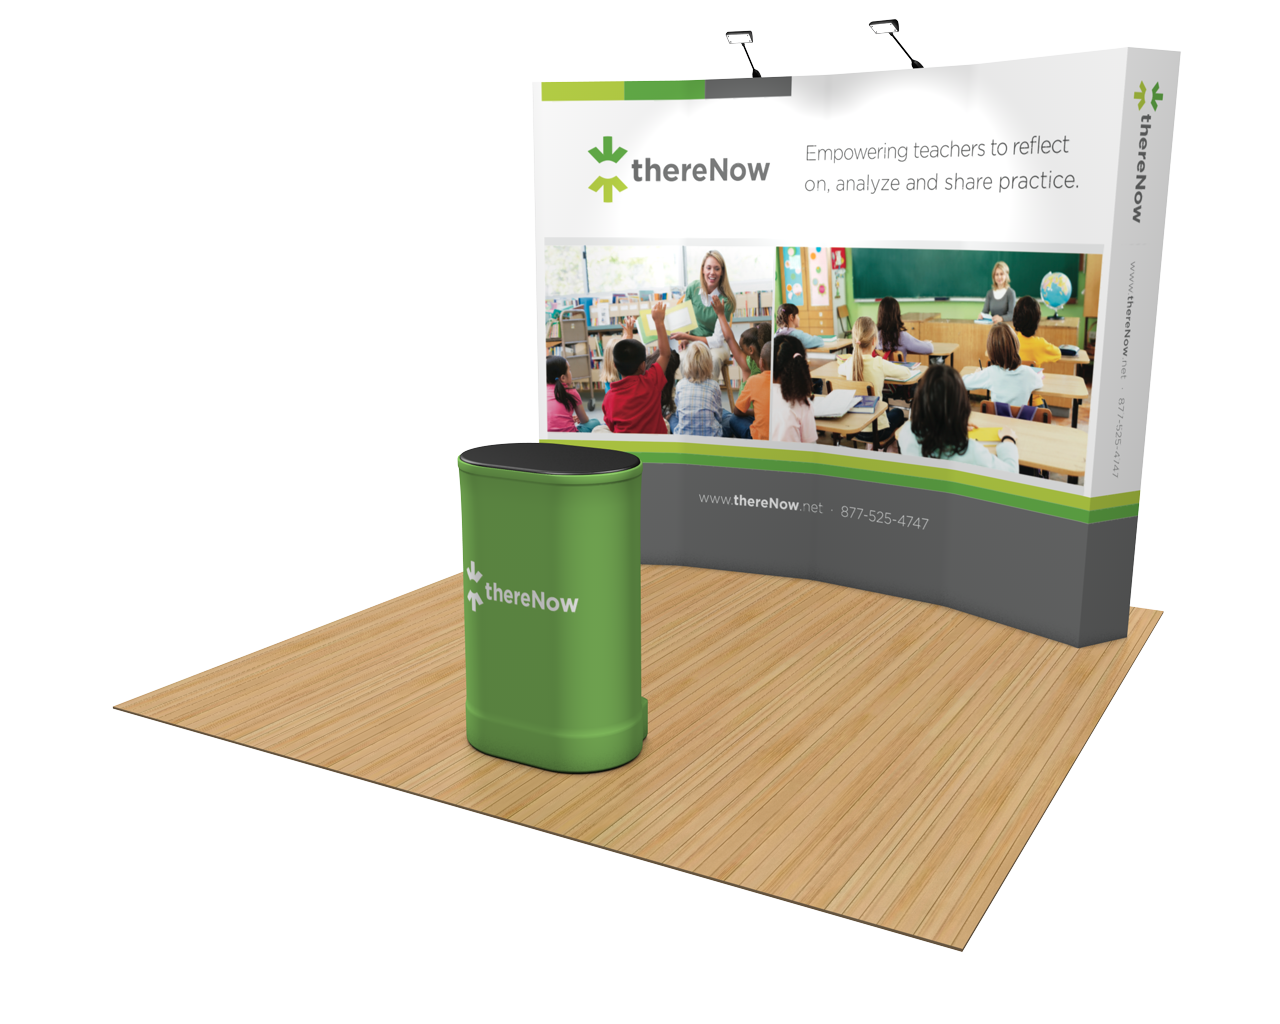 OneFabric Curved 10ft Trade Show Display Kit